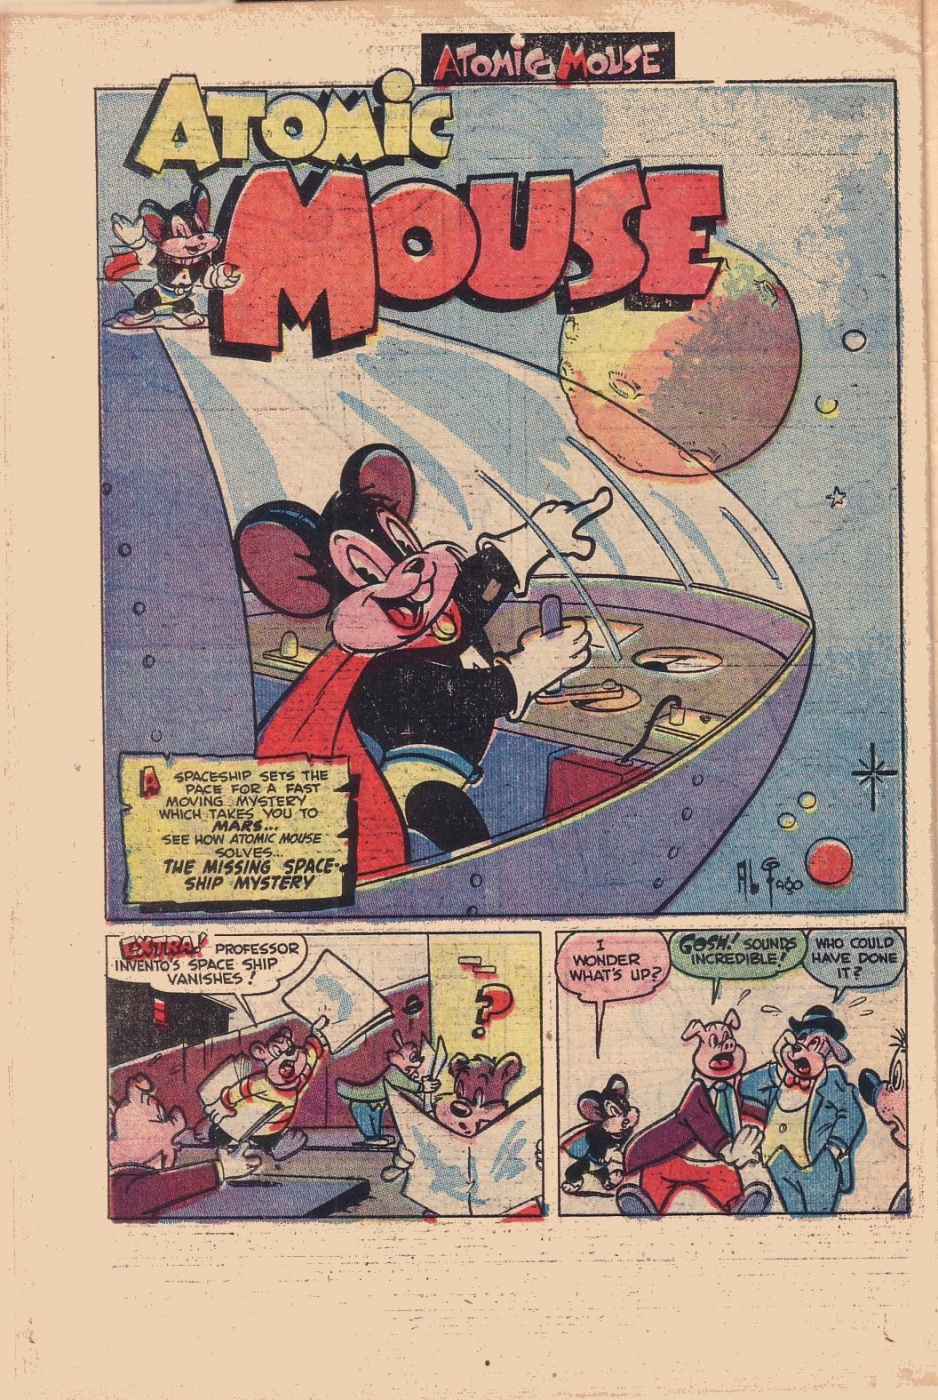 Atomic Mouse Comics - Funny Comics (26)